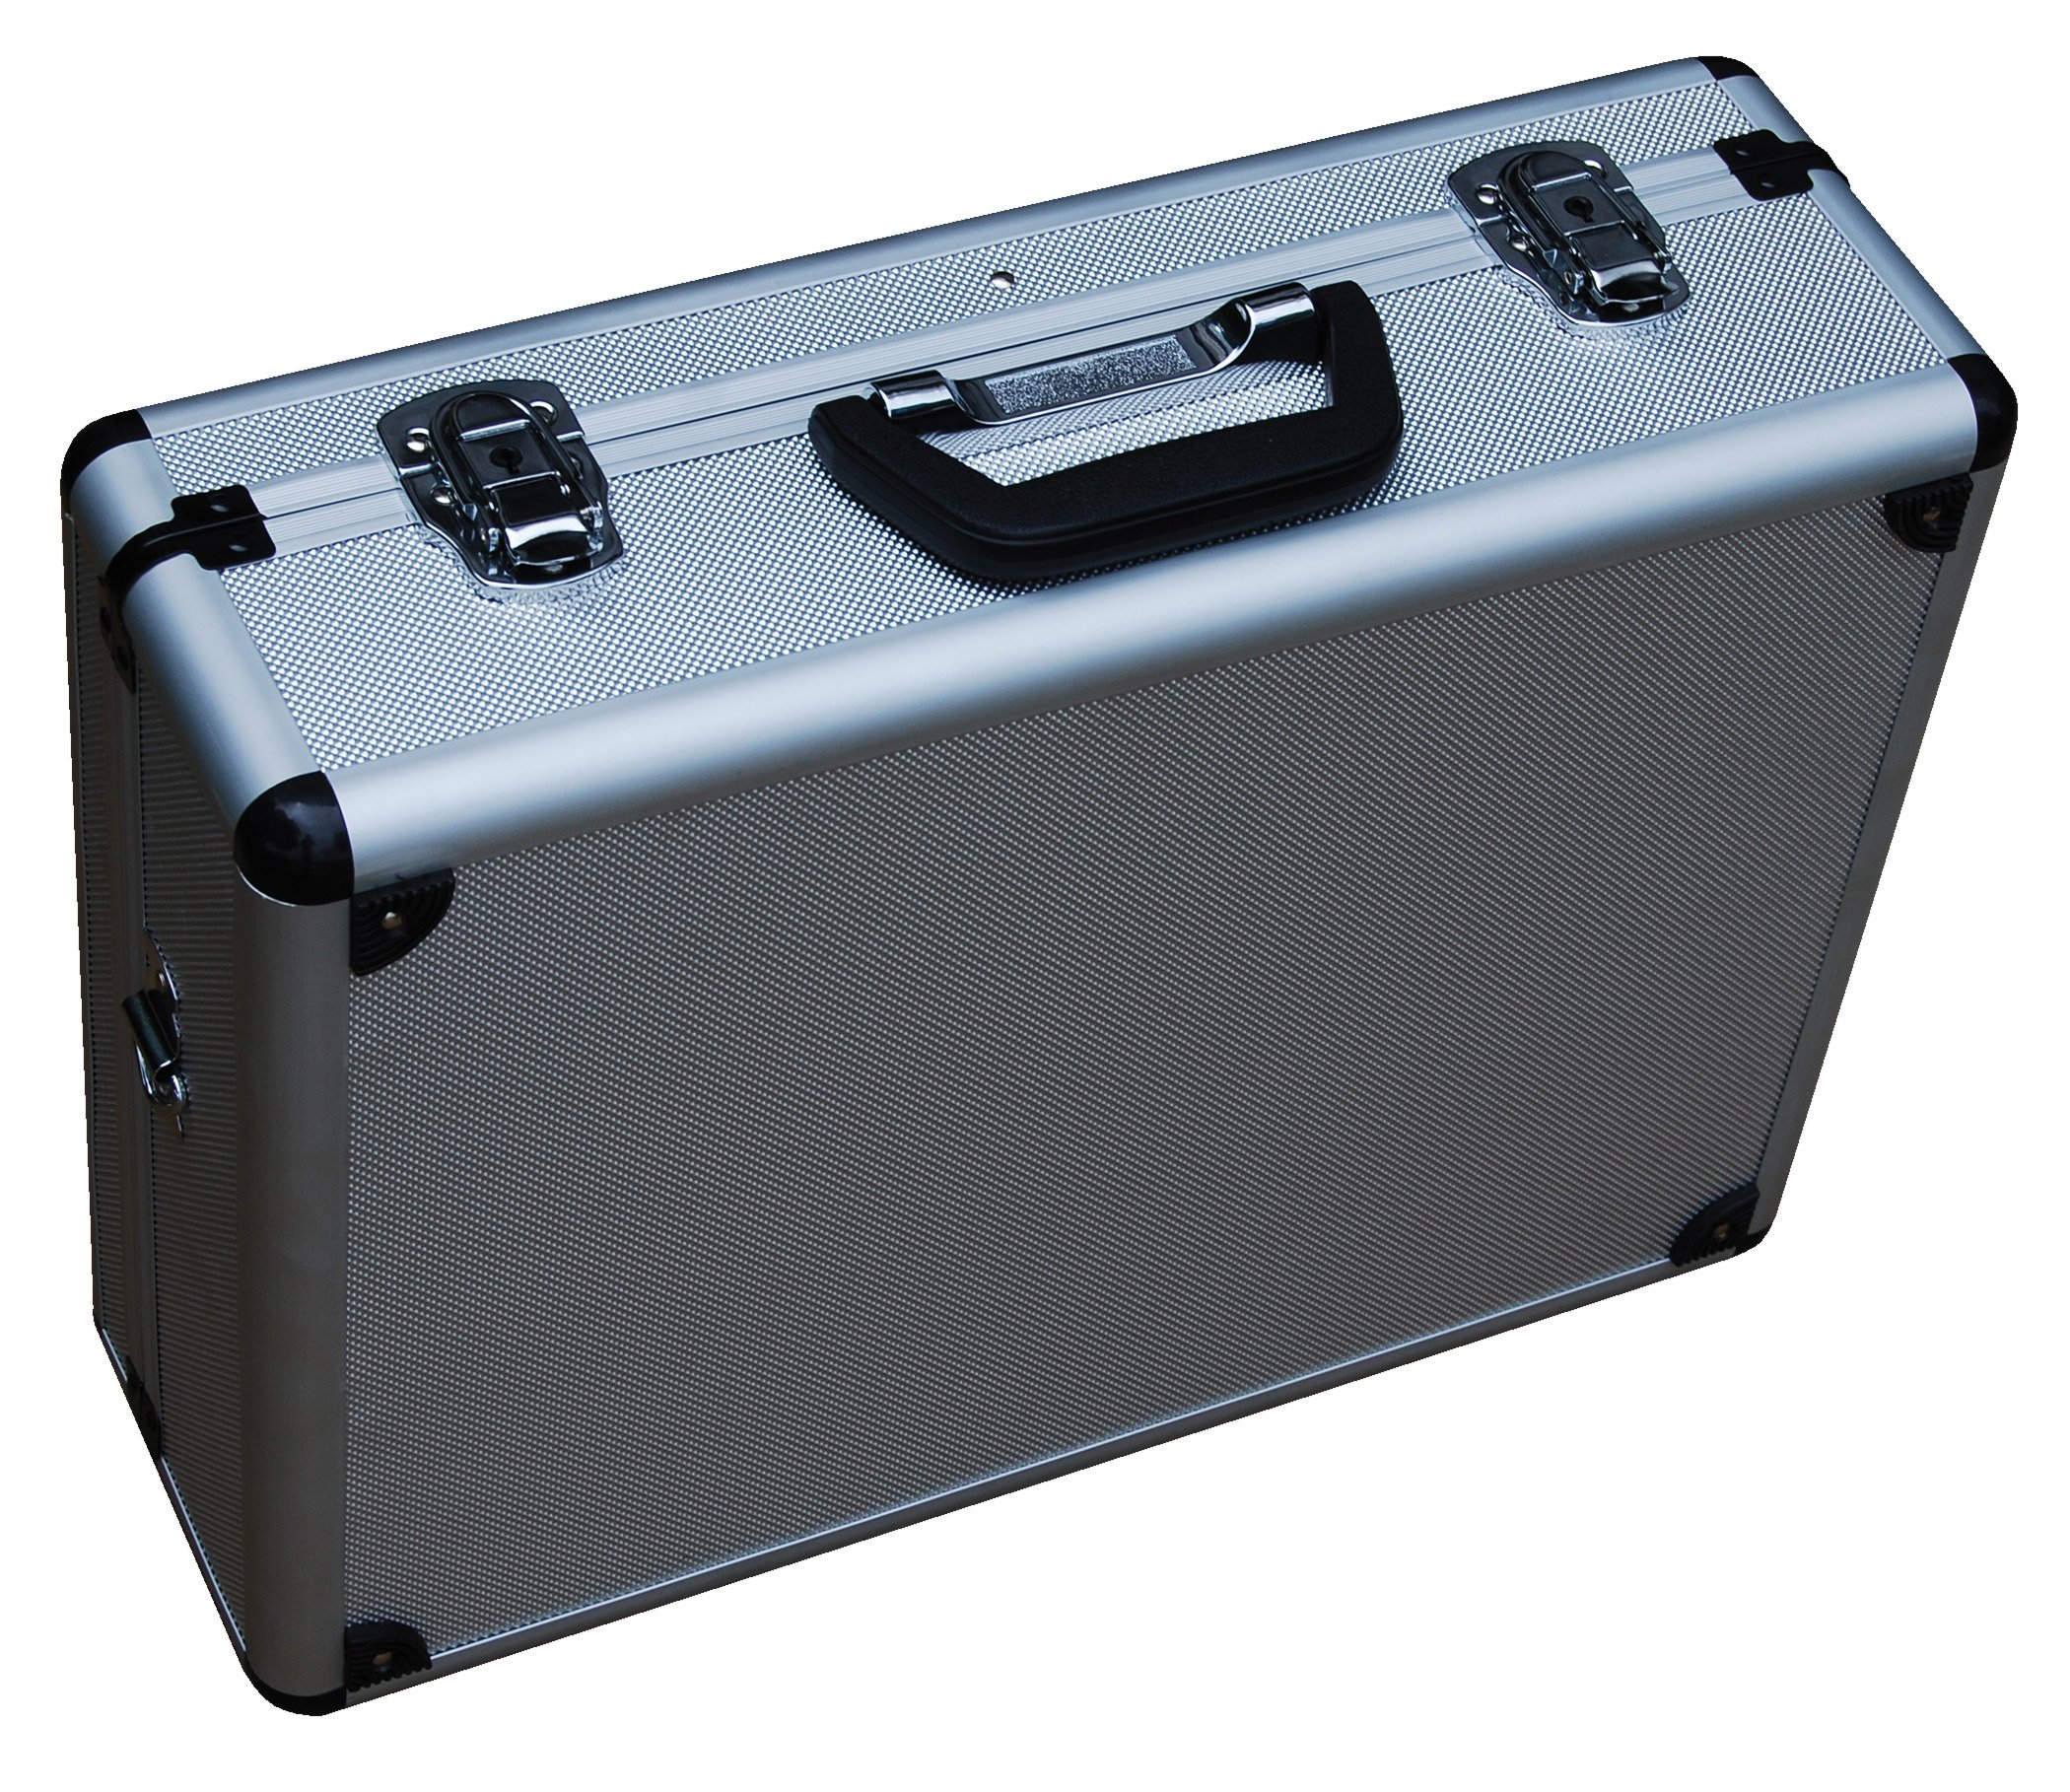 Vestil CASE-1814 Rugged Textured Carrying Case with Rounded Corners. 18'' Length, 14'' Width, 6'' Height by Vestil